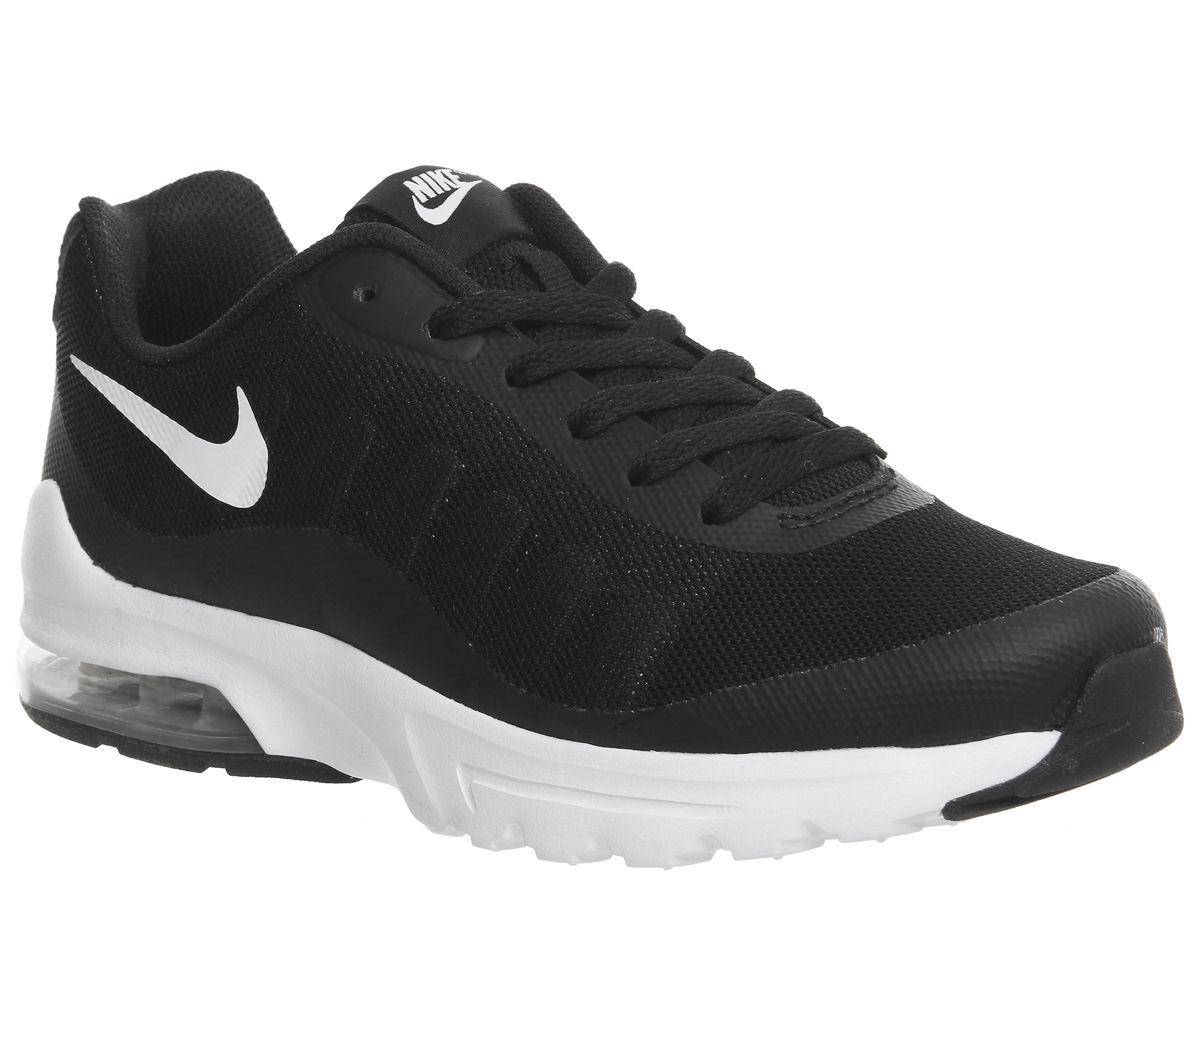 6a2f711aff Nike Air Max Invigor Trainers Black White - Hers trainers